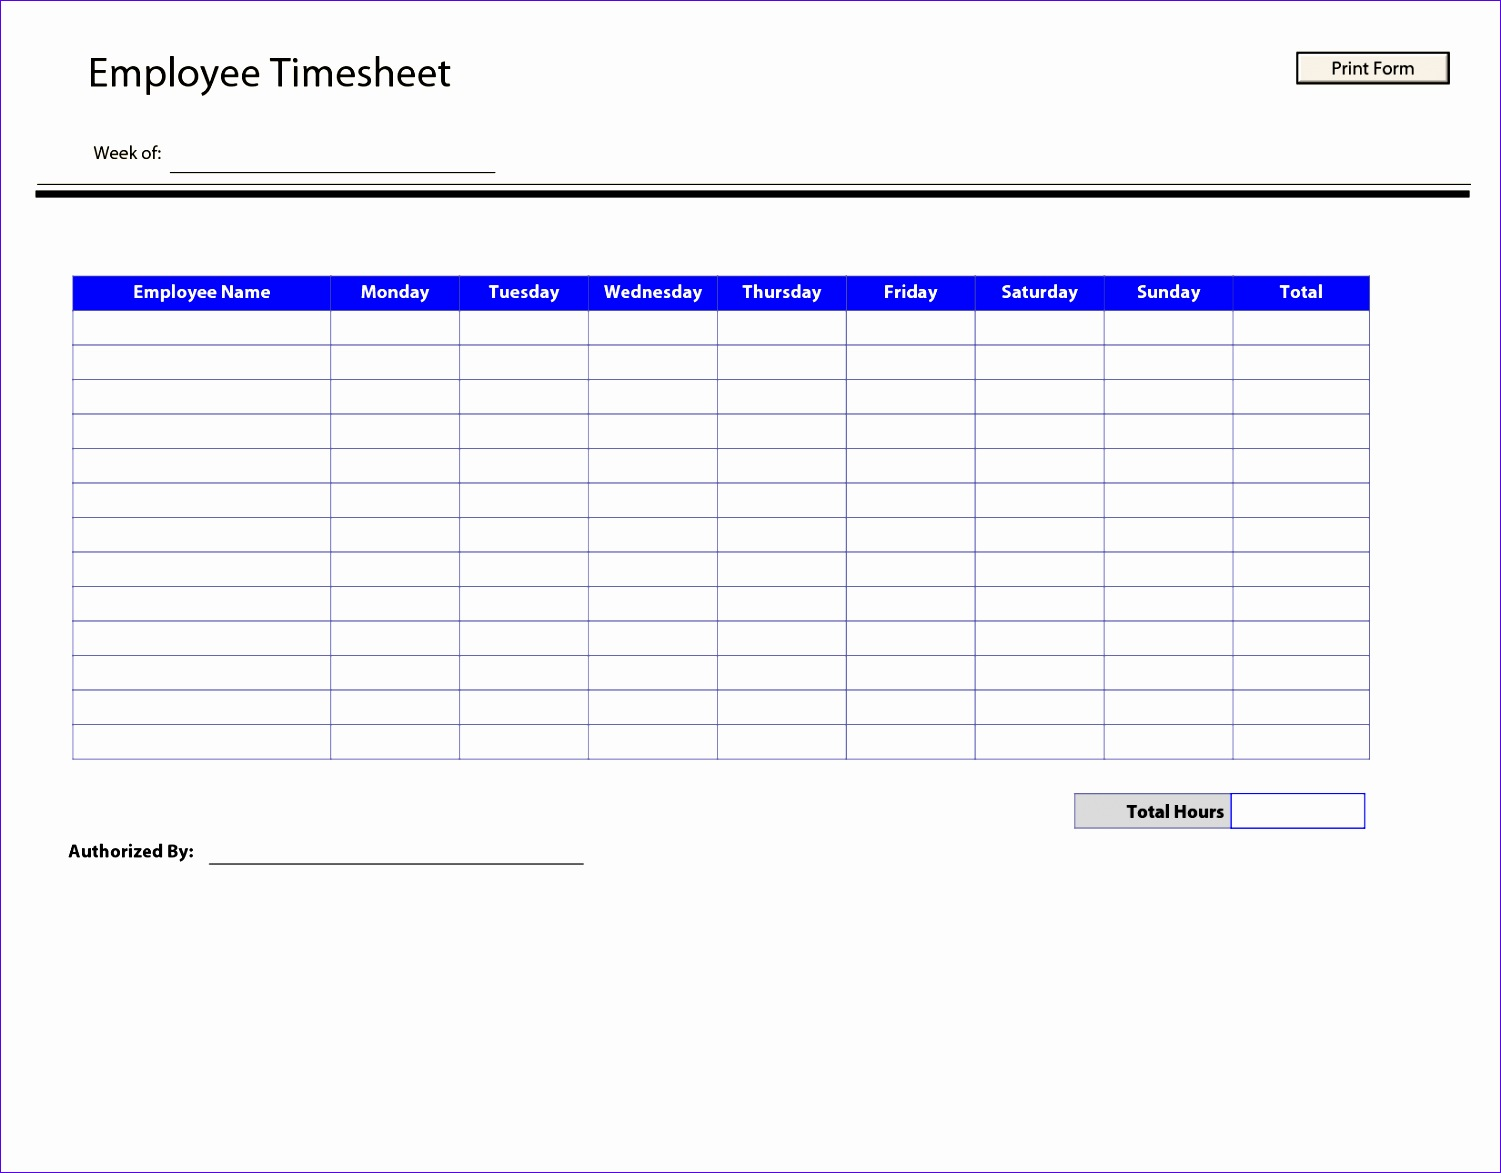 Ce1f48aaa127b48e07d38fb A623. Blank Employee Timesheet Template ...  Employee To Do List Template